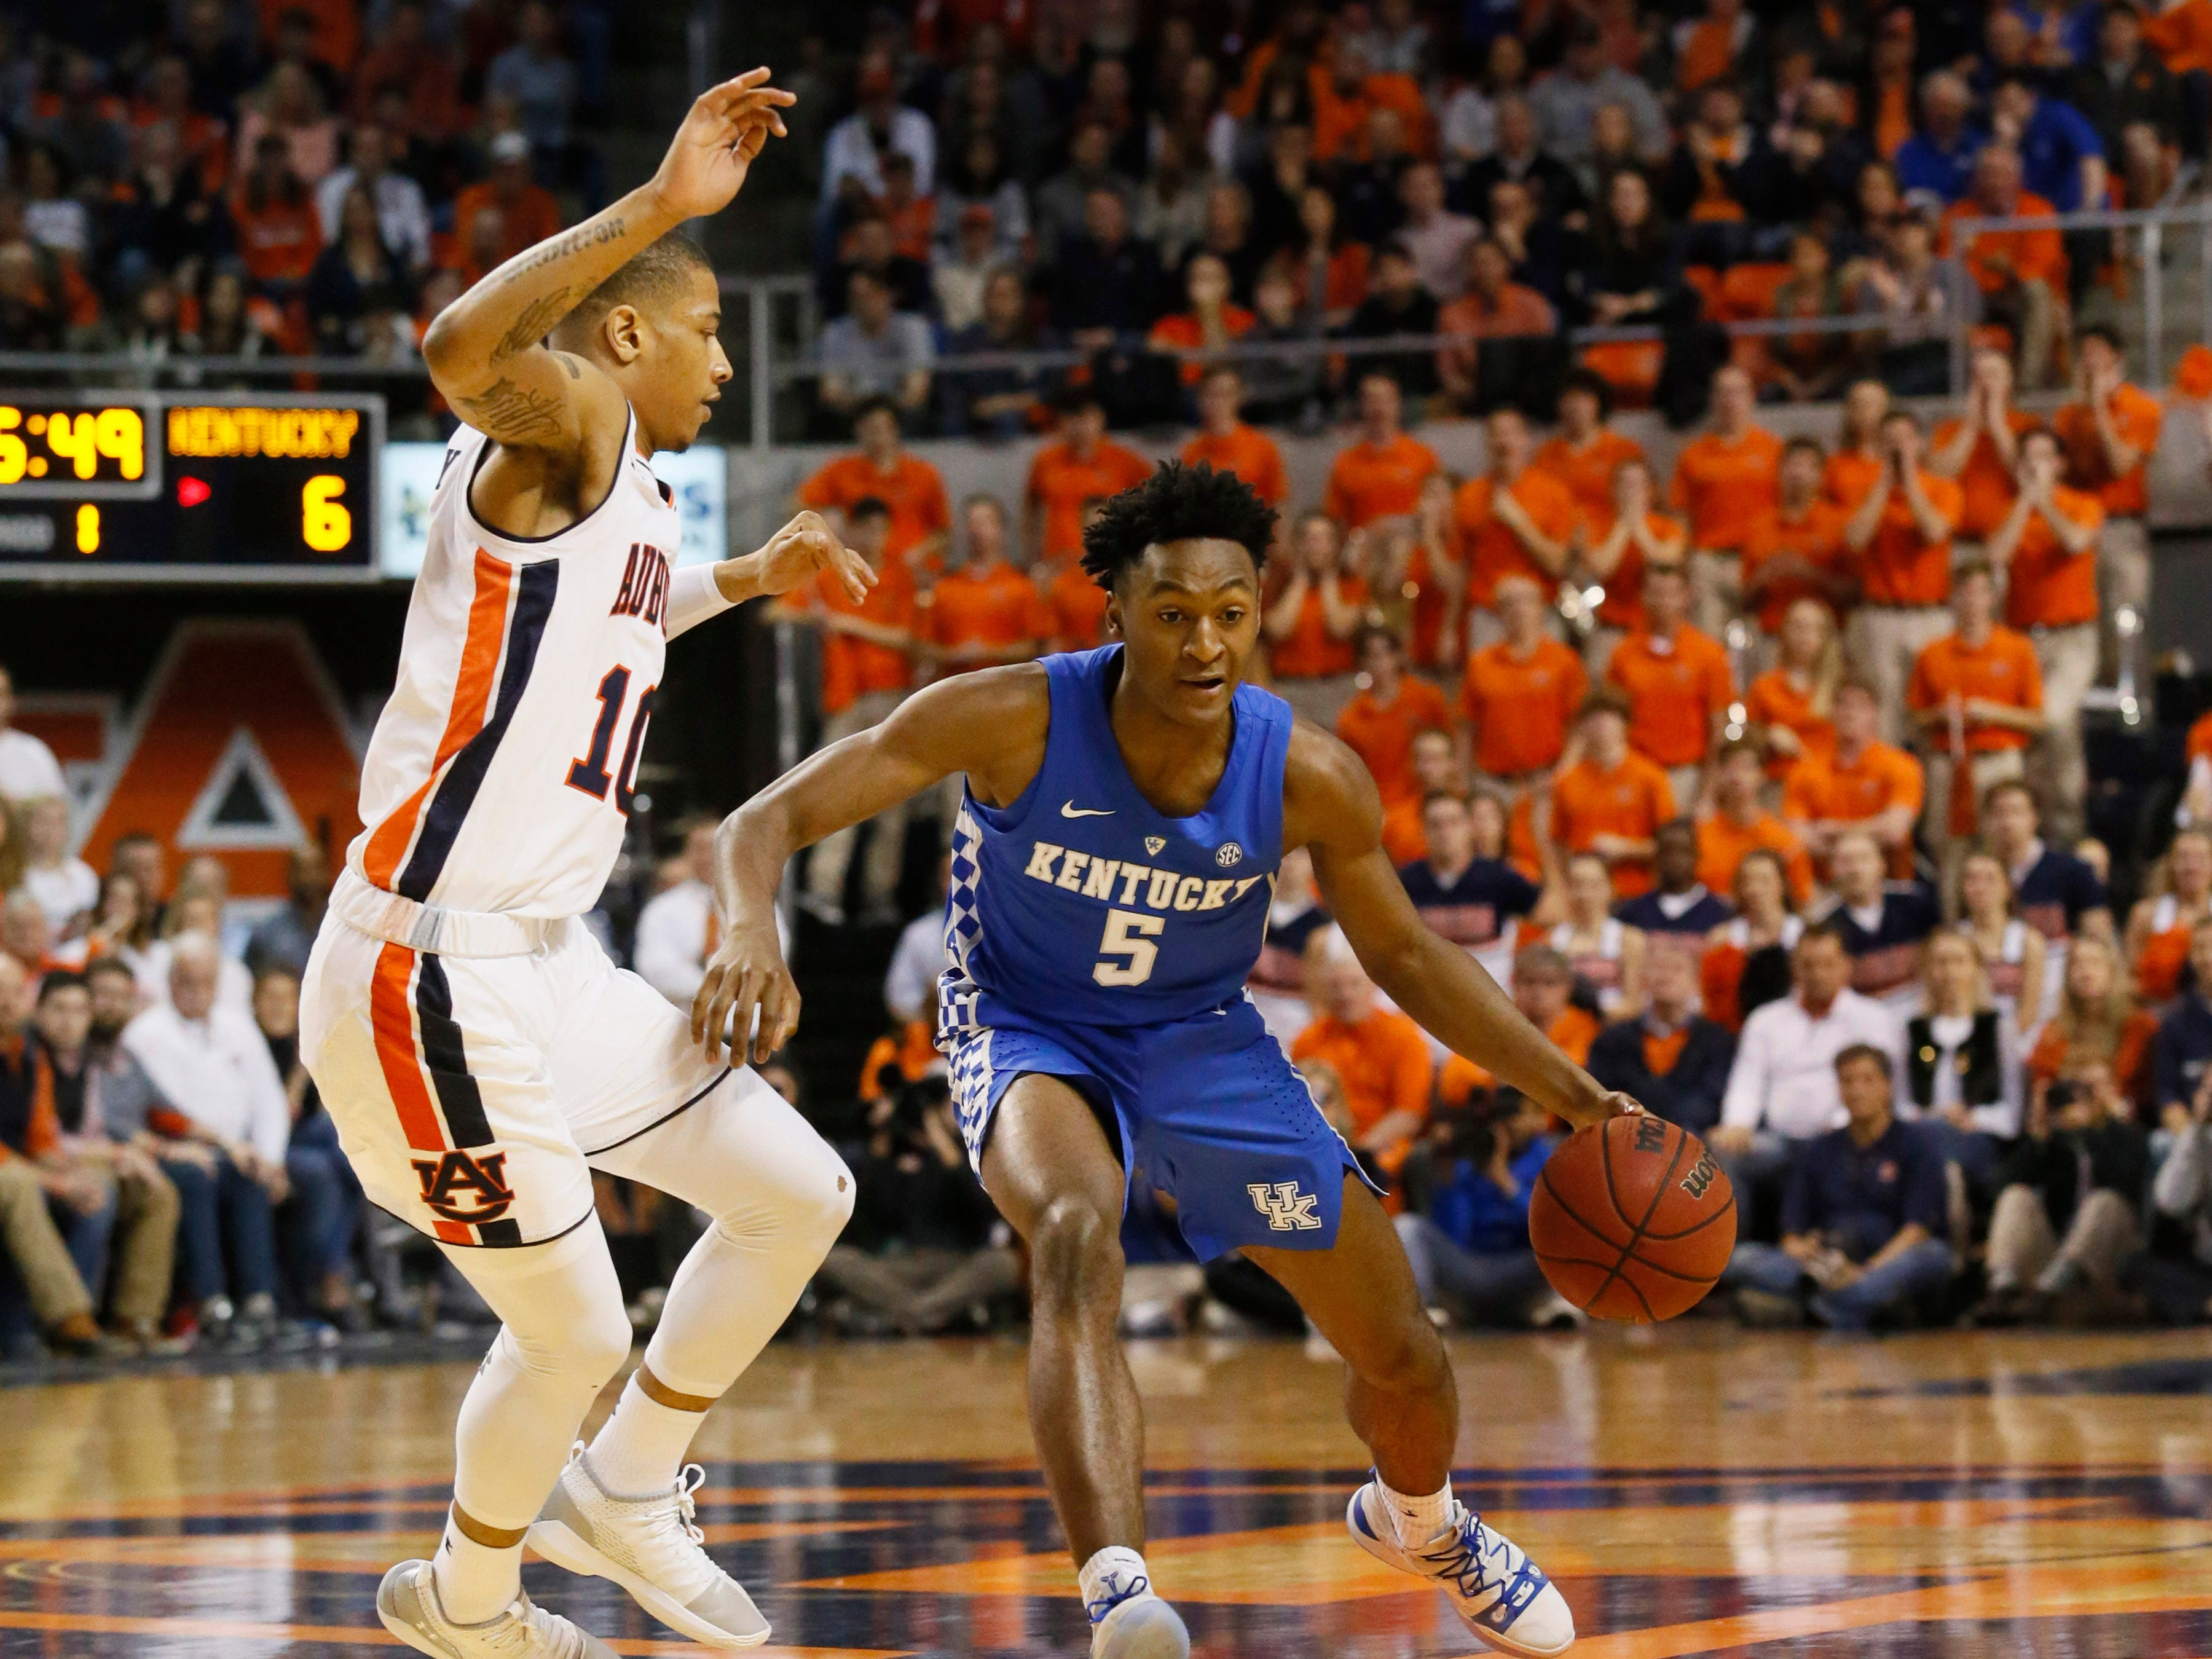 Kentucky Wildcats guard Immanuel Quickley (5) is pressured by Auburn Tigers guard Samir Doughty (10) during the first half at Auburn Arena in Auburn, Alabama, on Saturday, Jan. 19, 2019.